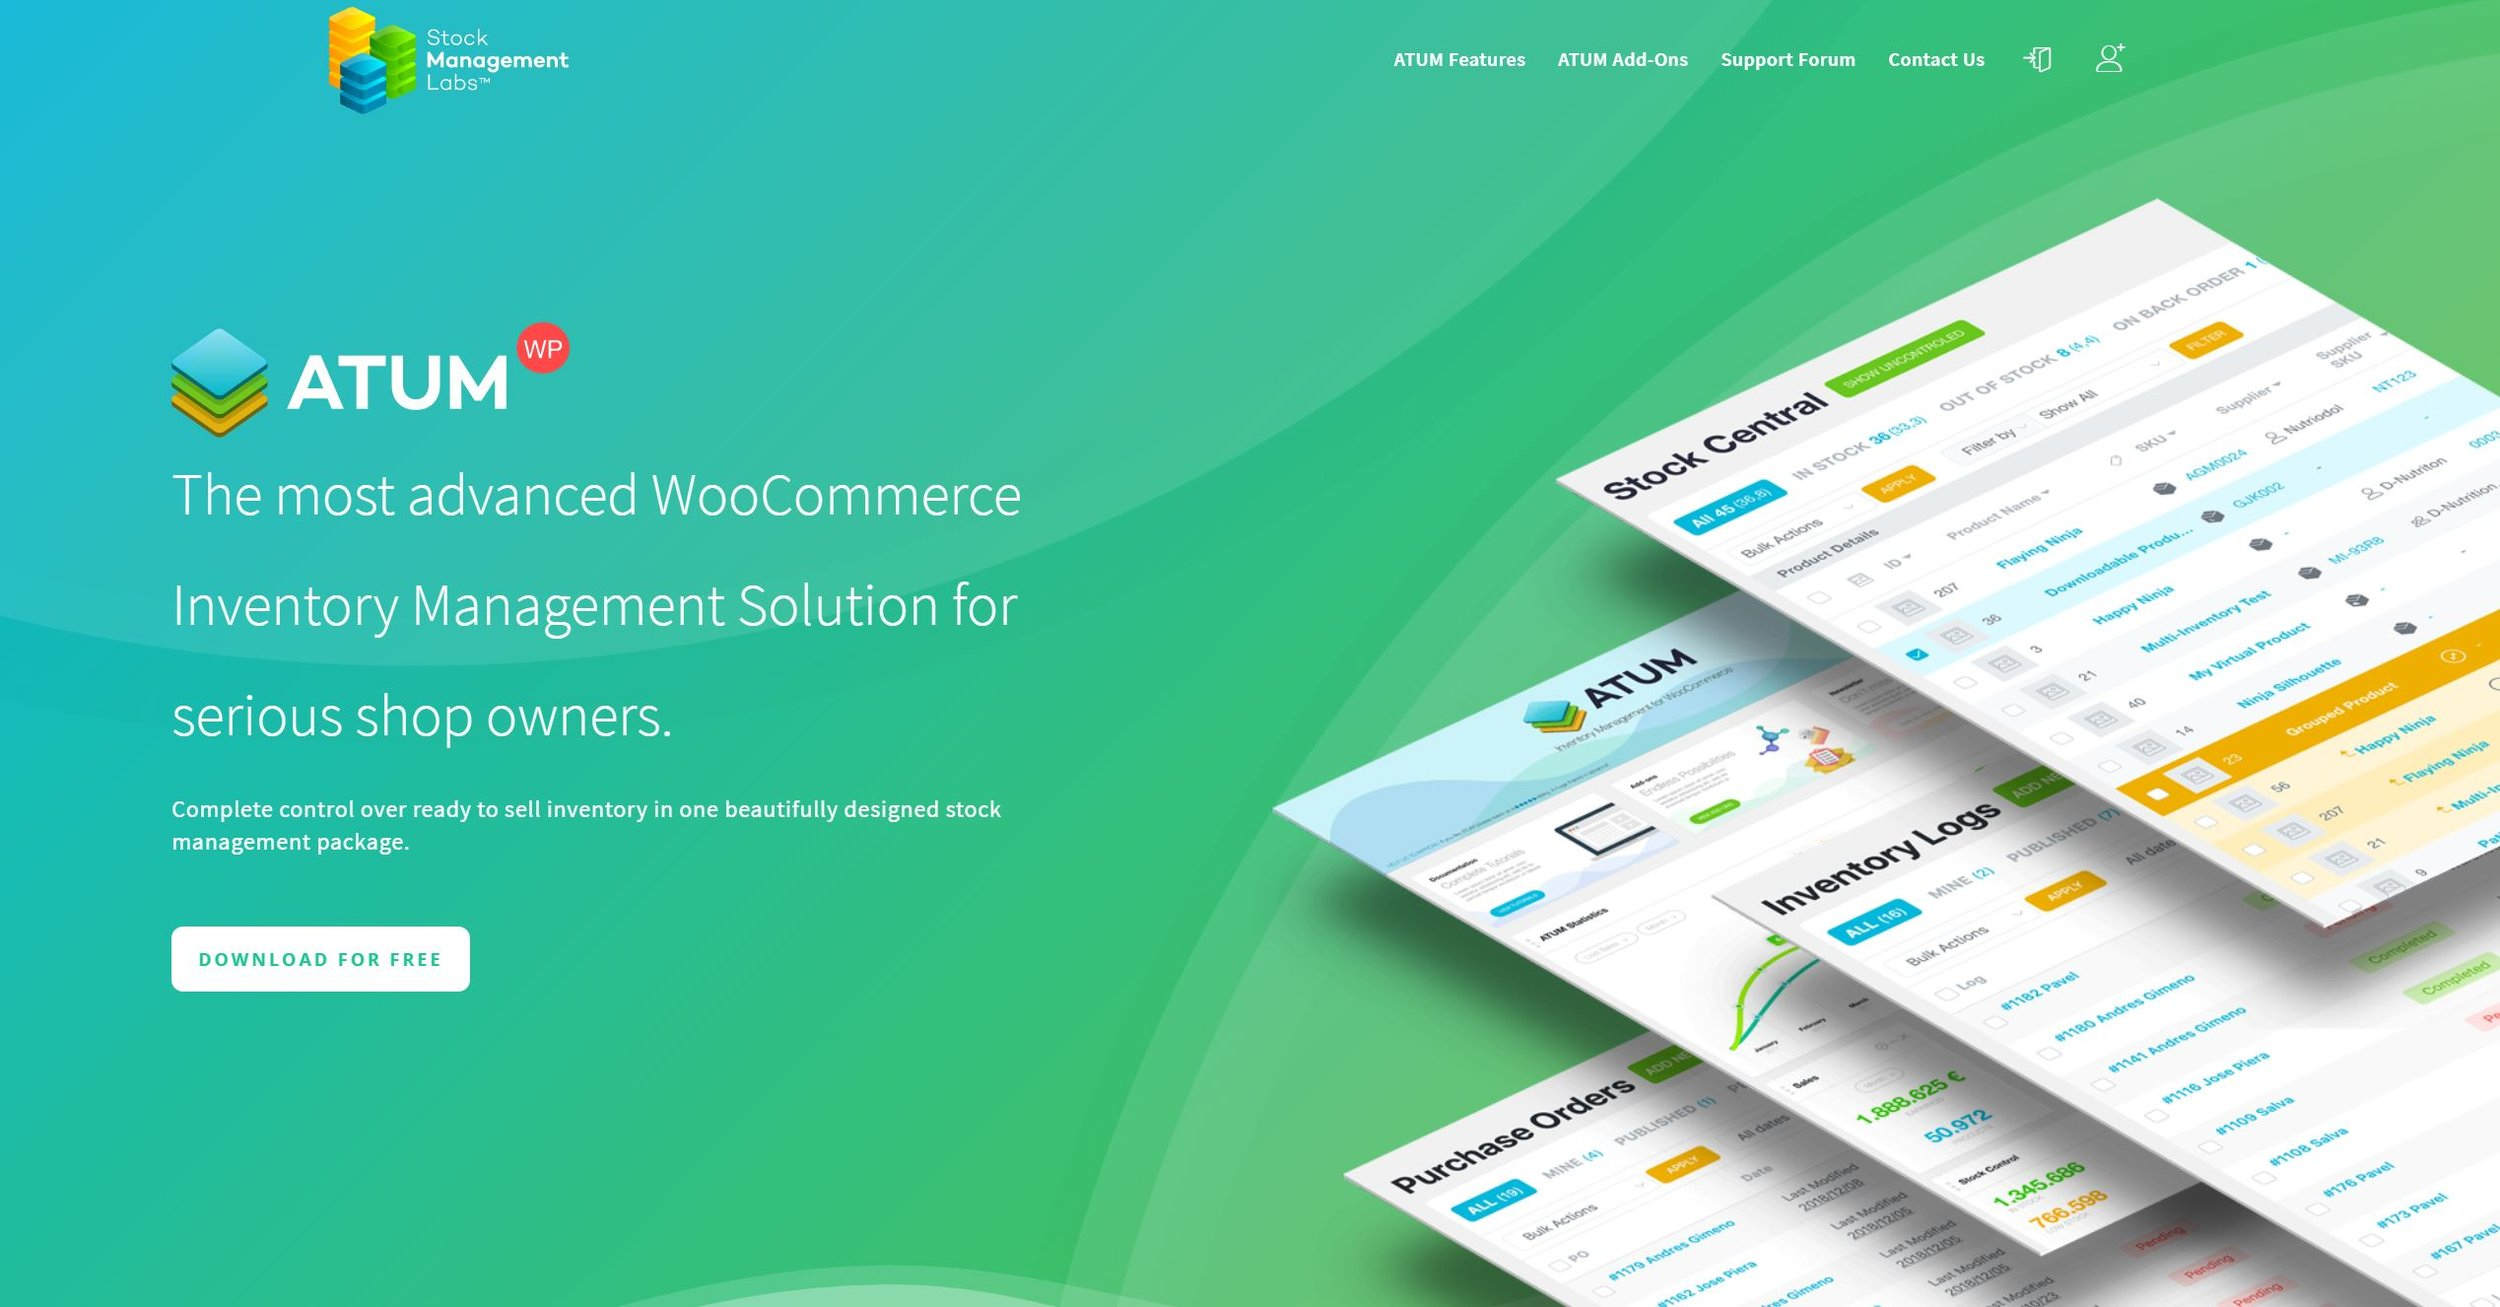 WooCommerce stock management is a breeze once you install the correct tool.